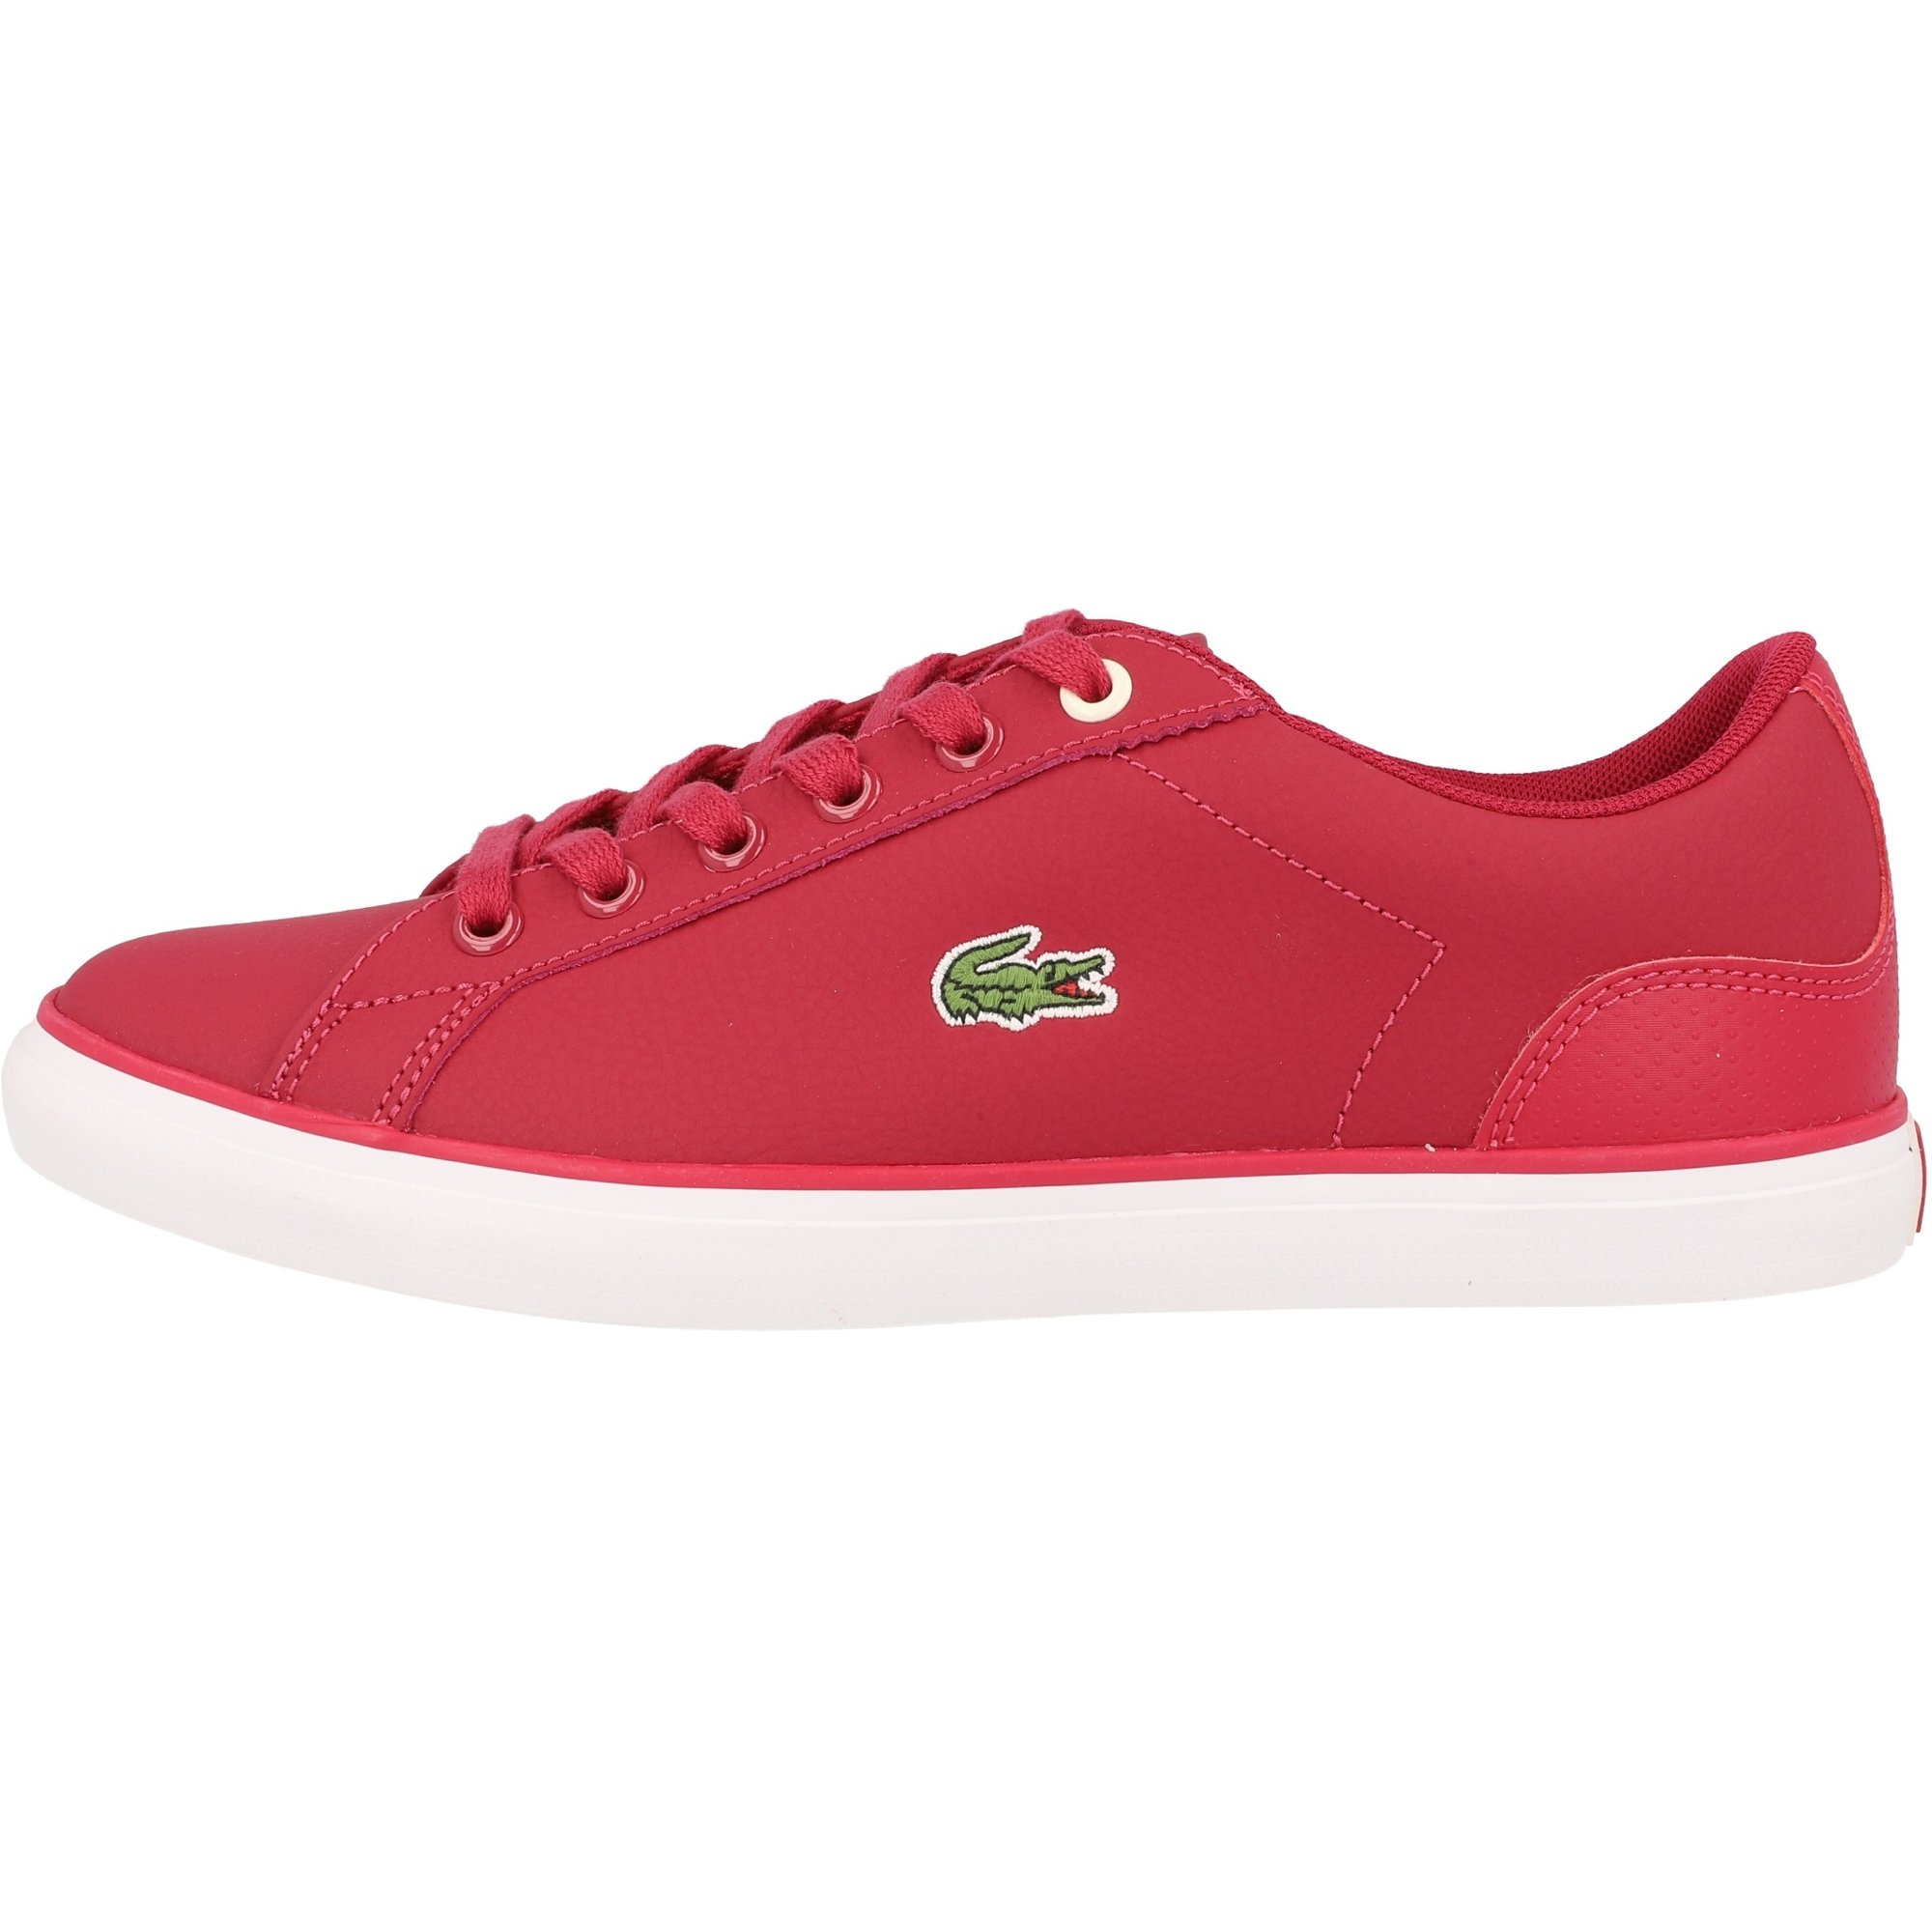 Lacoste Lerond 319 1 Dark Pink/Off White Synthetic